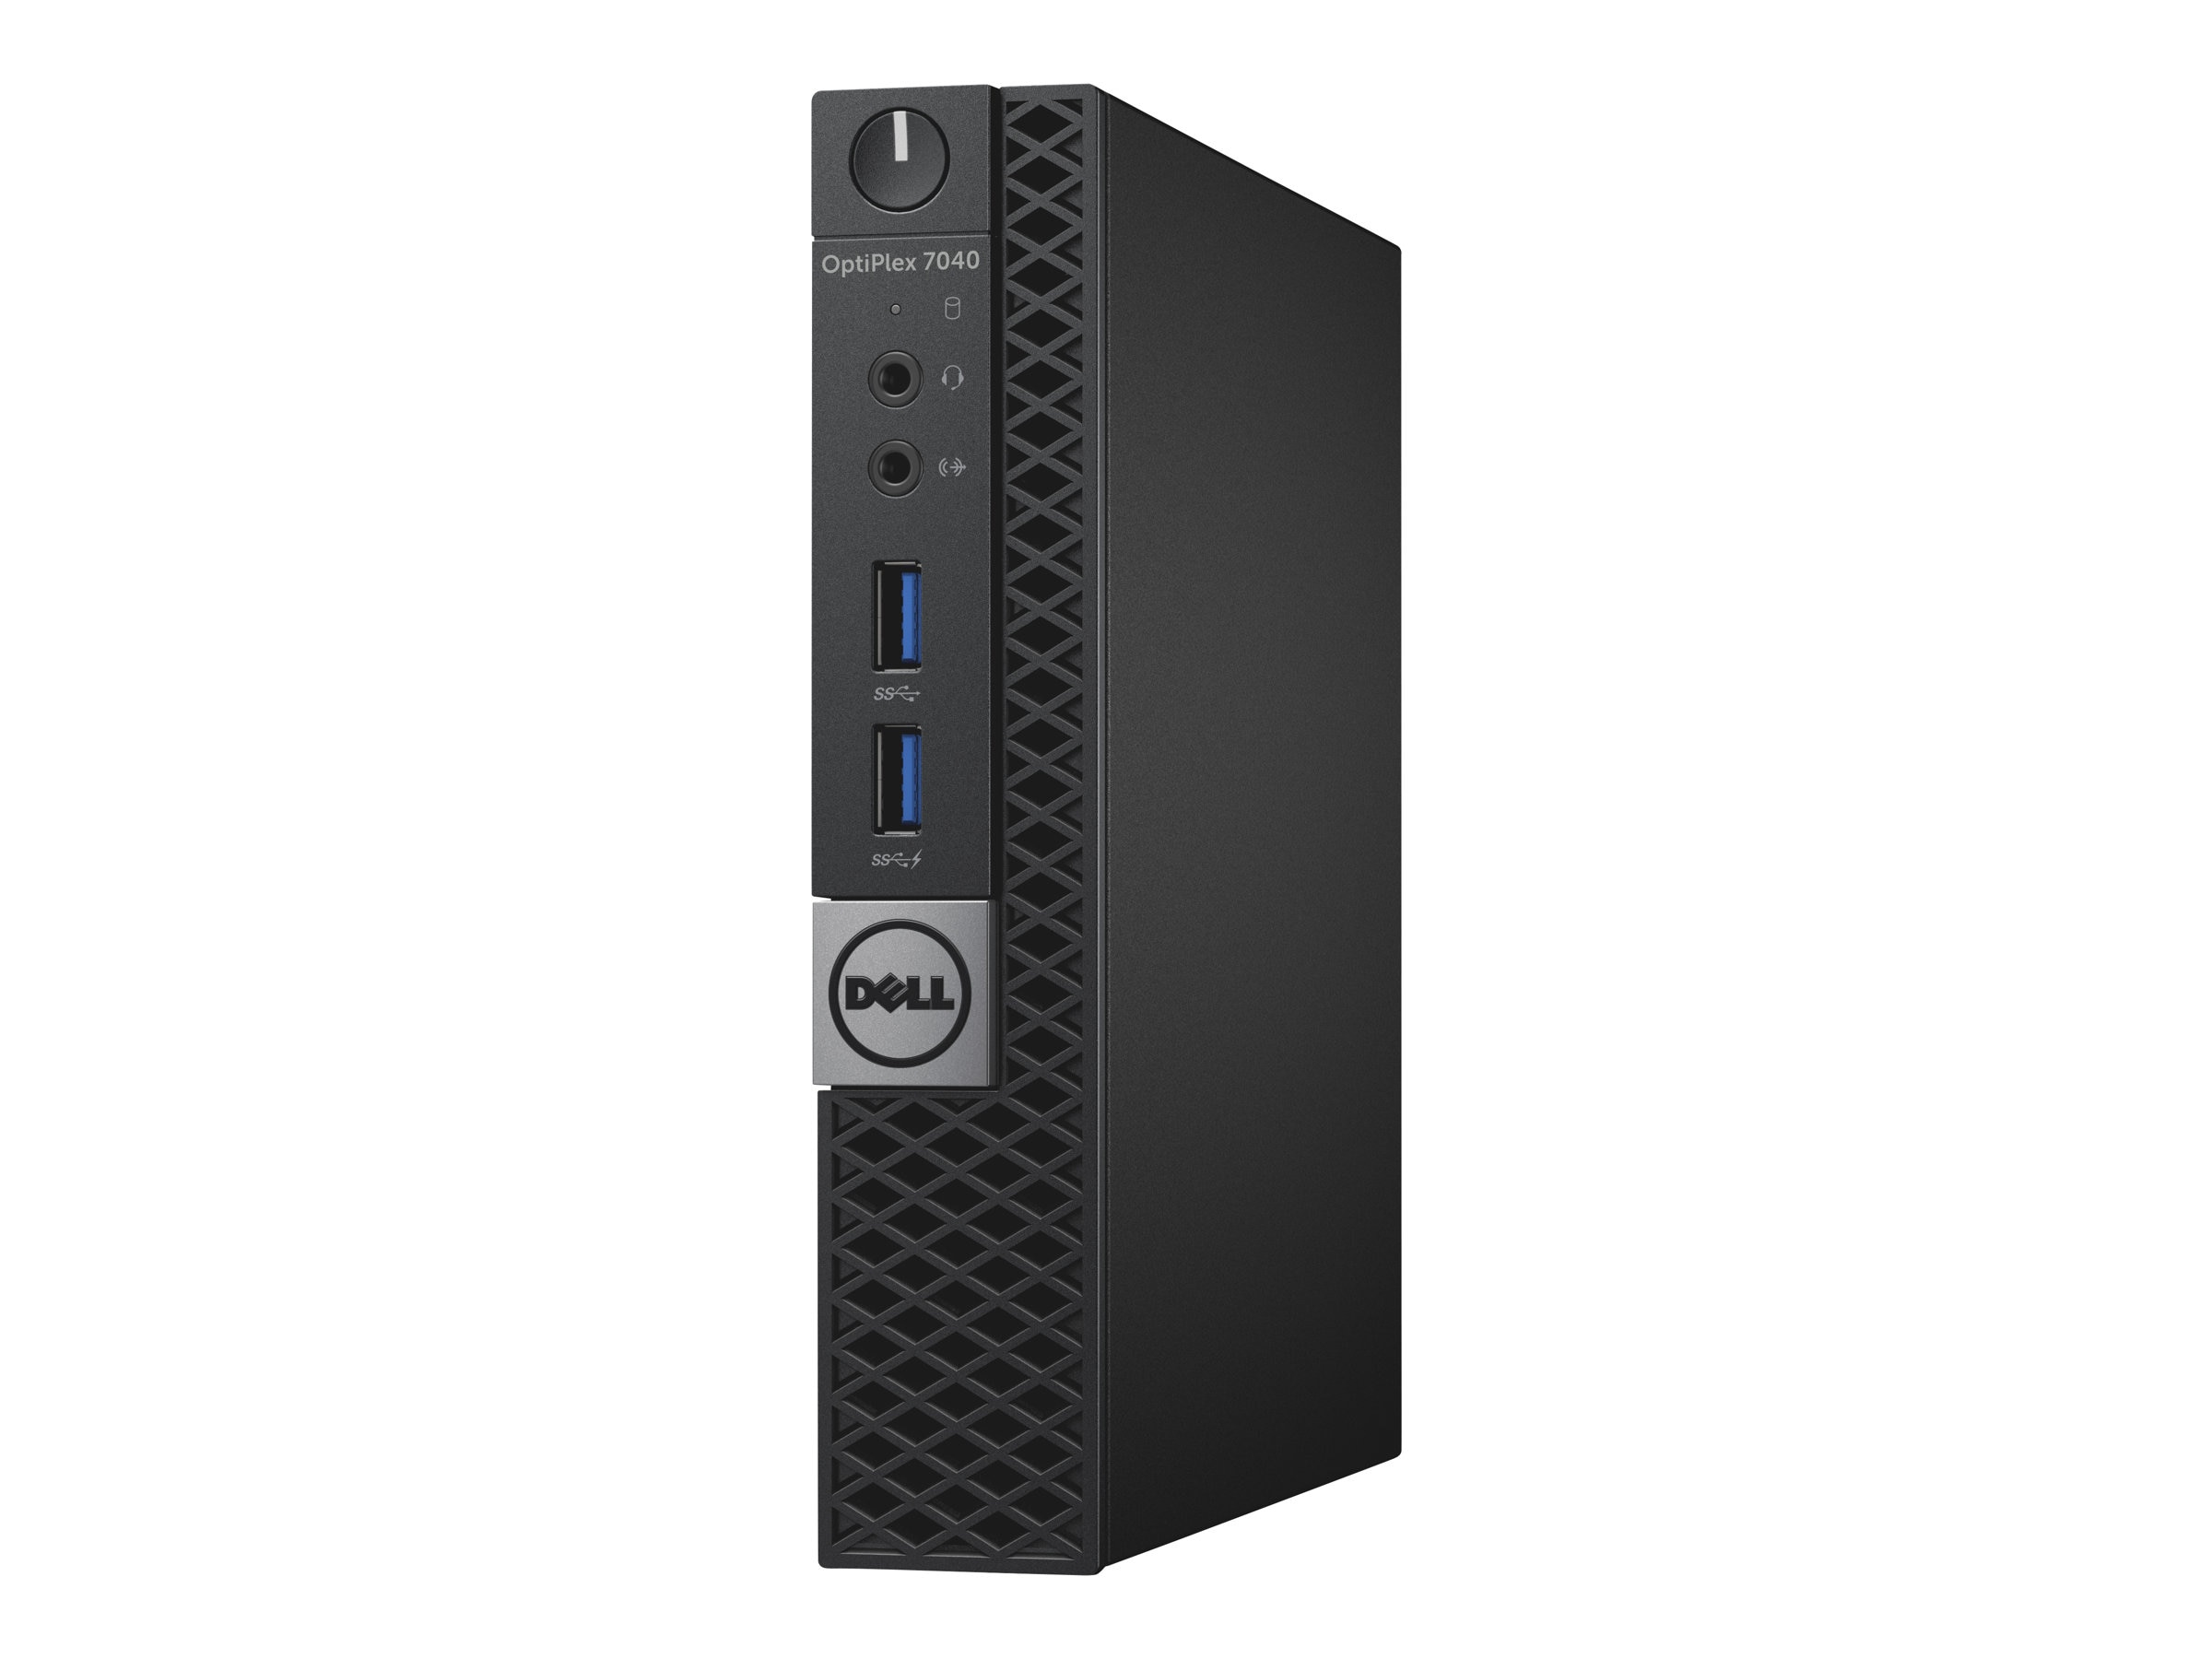 Dell OptiPlex 7040 2.5GHz Core i5 8GB RAM 128GB hard drive